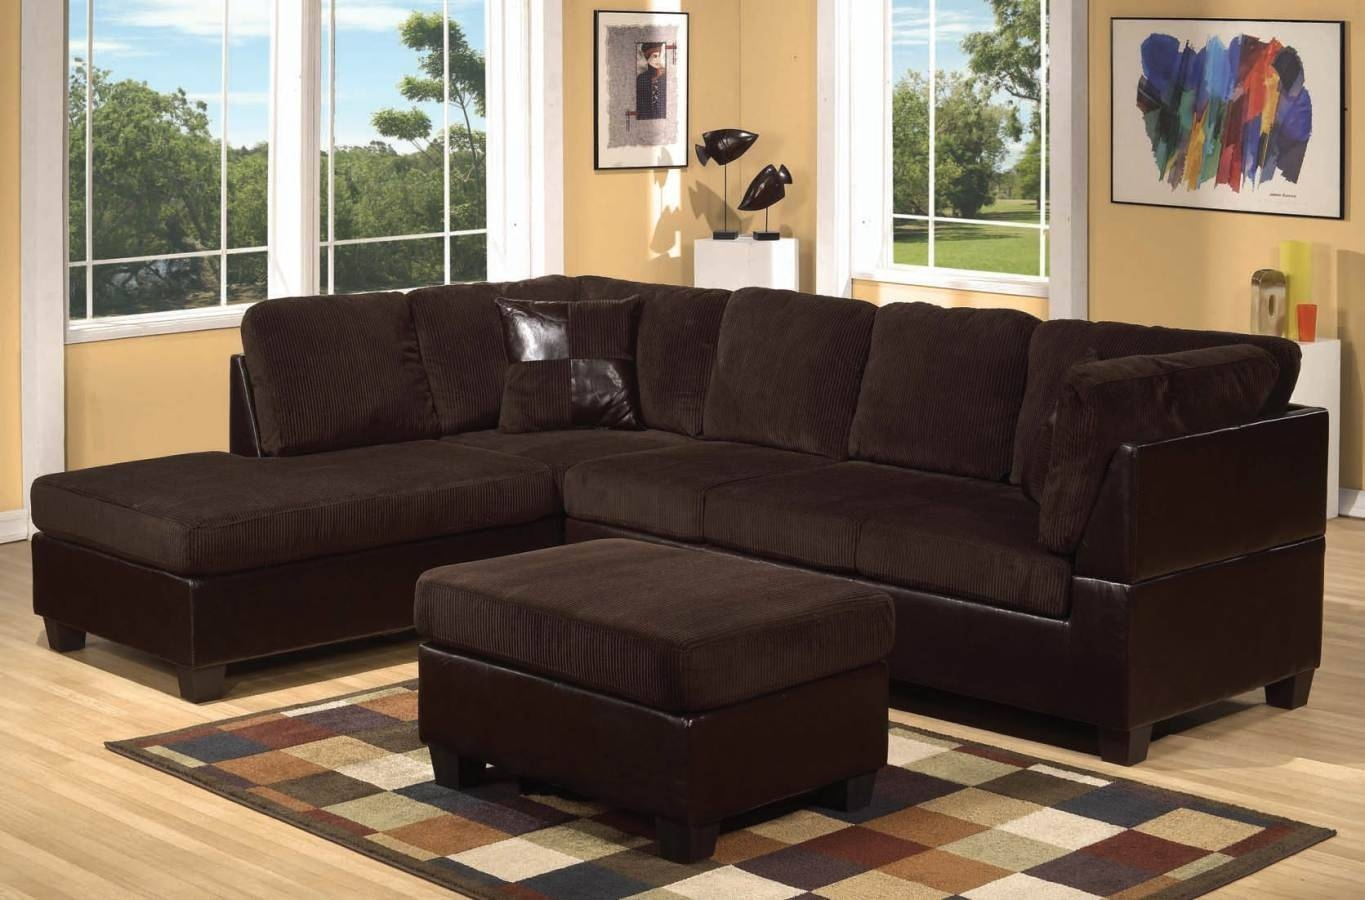 Oversized Living Room Sets Living Room Design And Living Room Ideas with Sectional Sofa With Oversized Ottoman (Image 20 of 30)